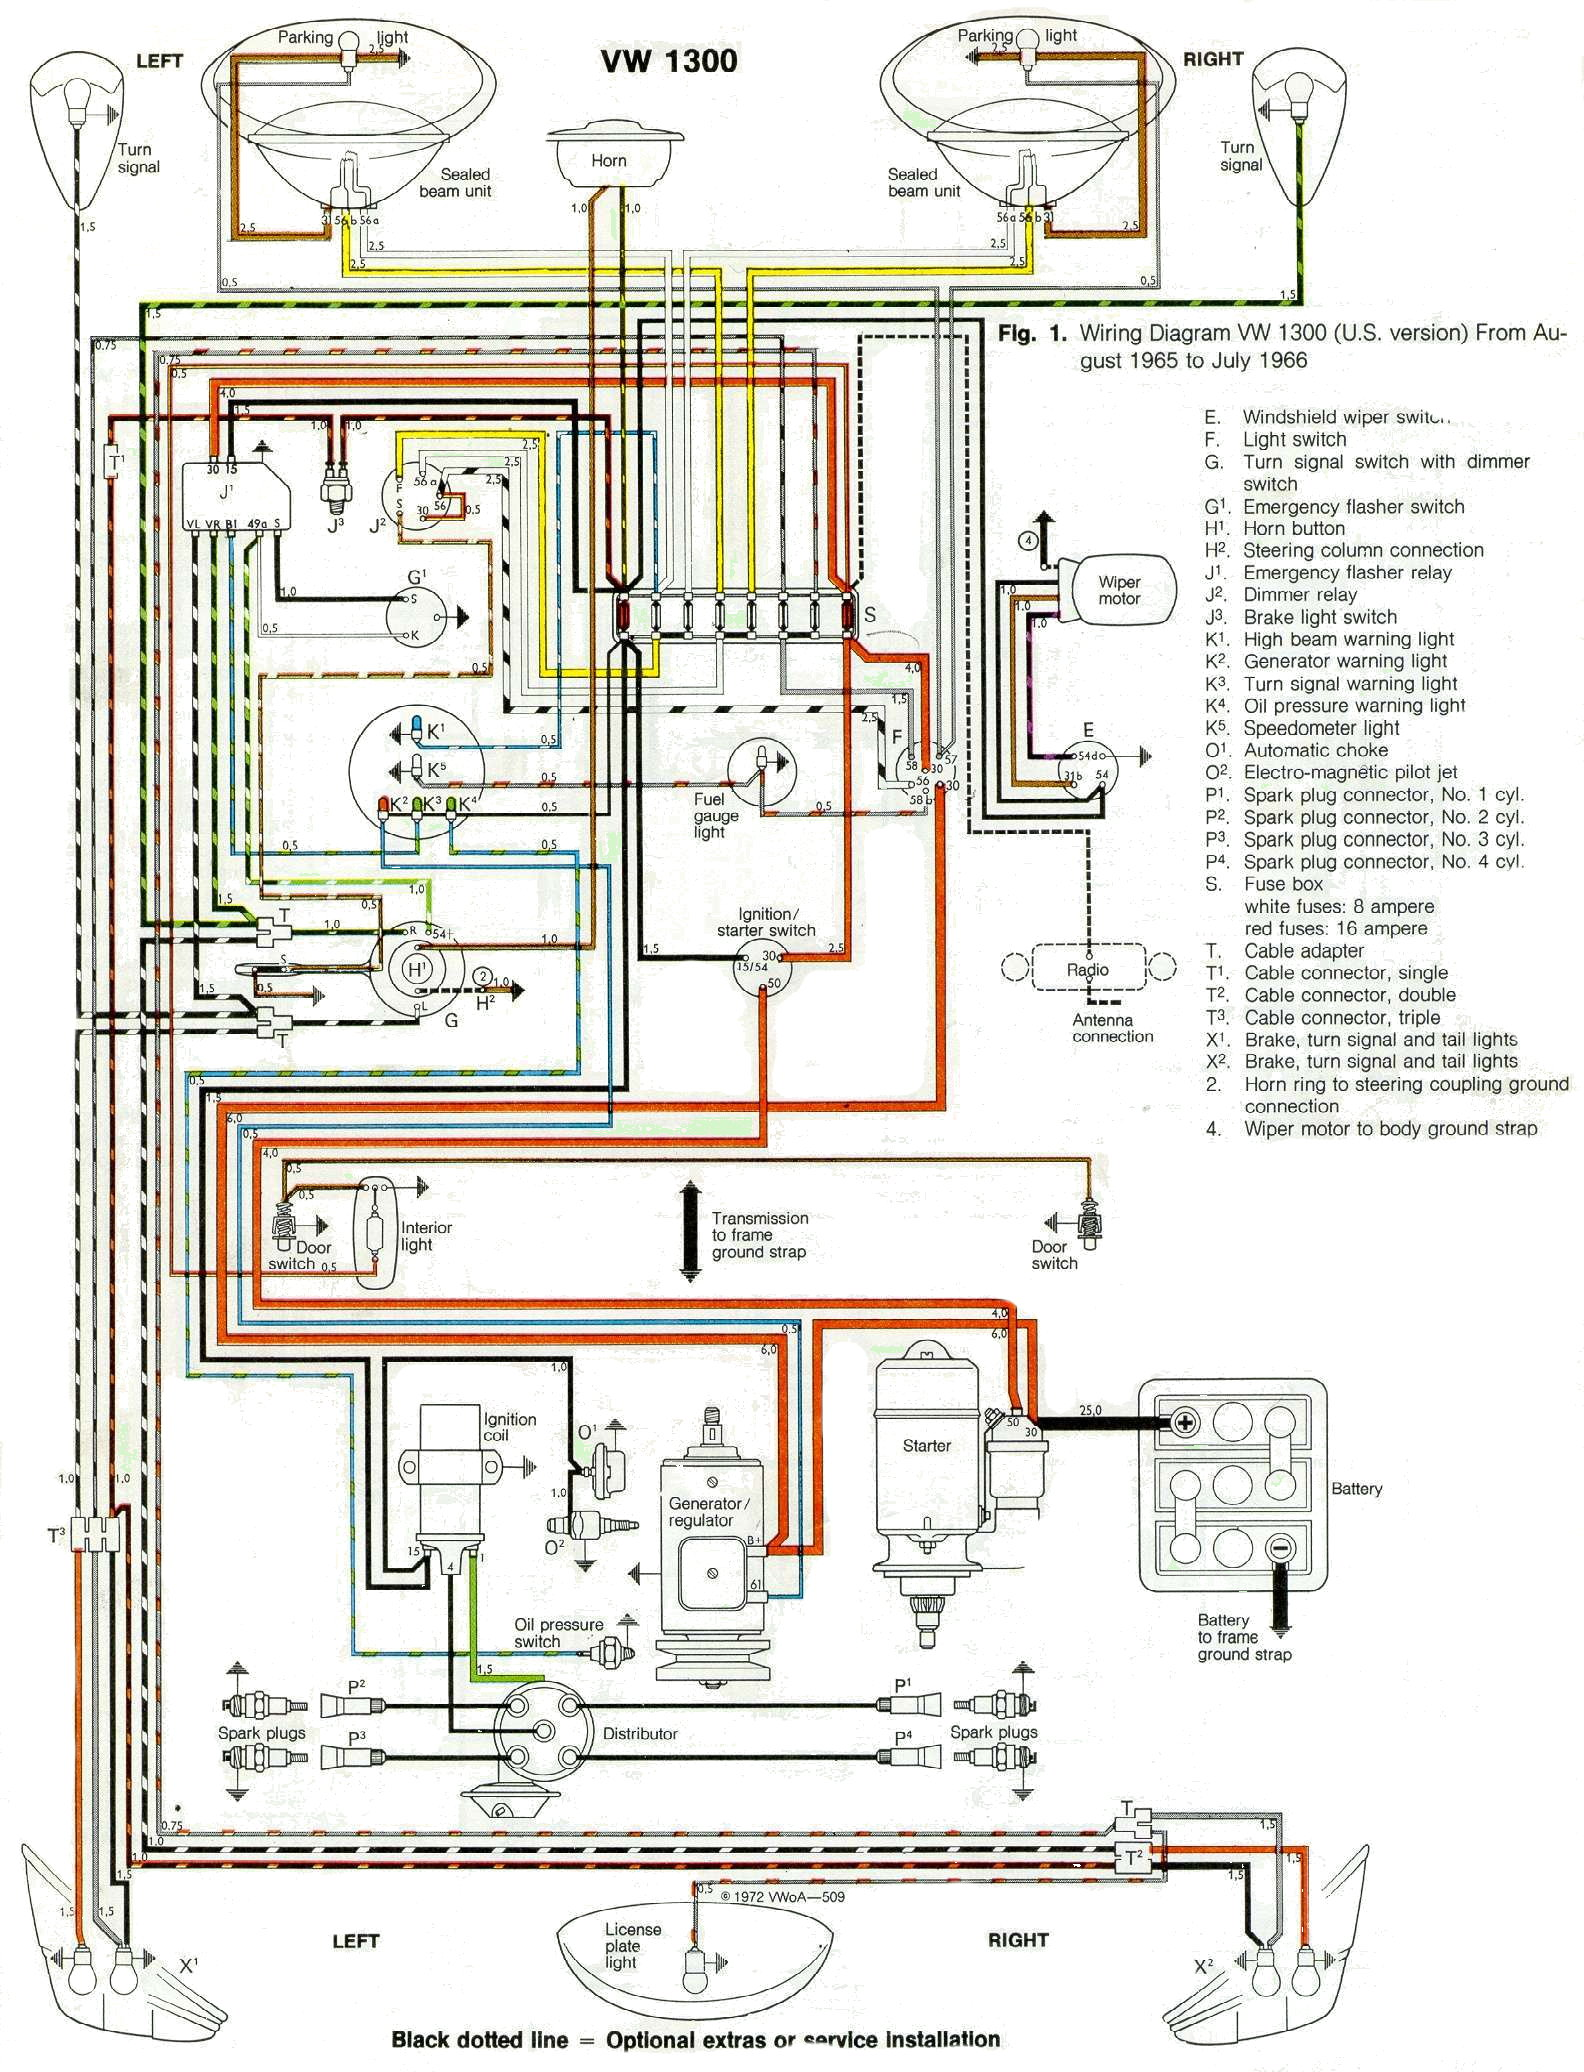 1966 wiring diagram rh 1966vwbeetle com vw beetle wiring diagram 1972 vw beetle wiring diagram 1973